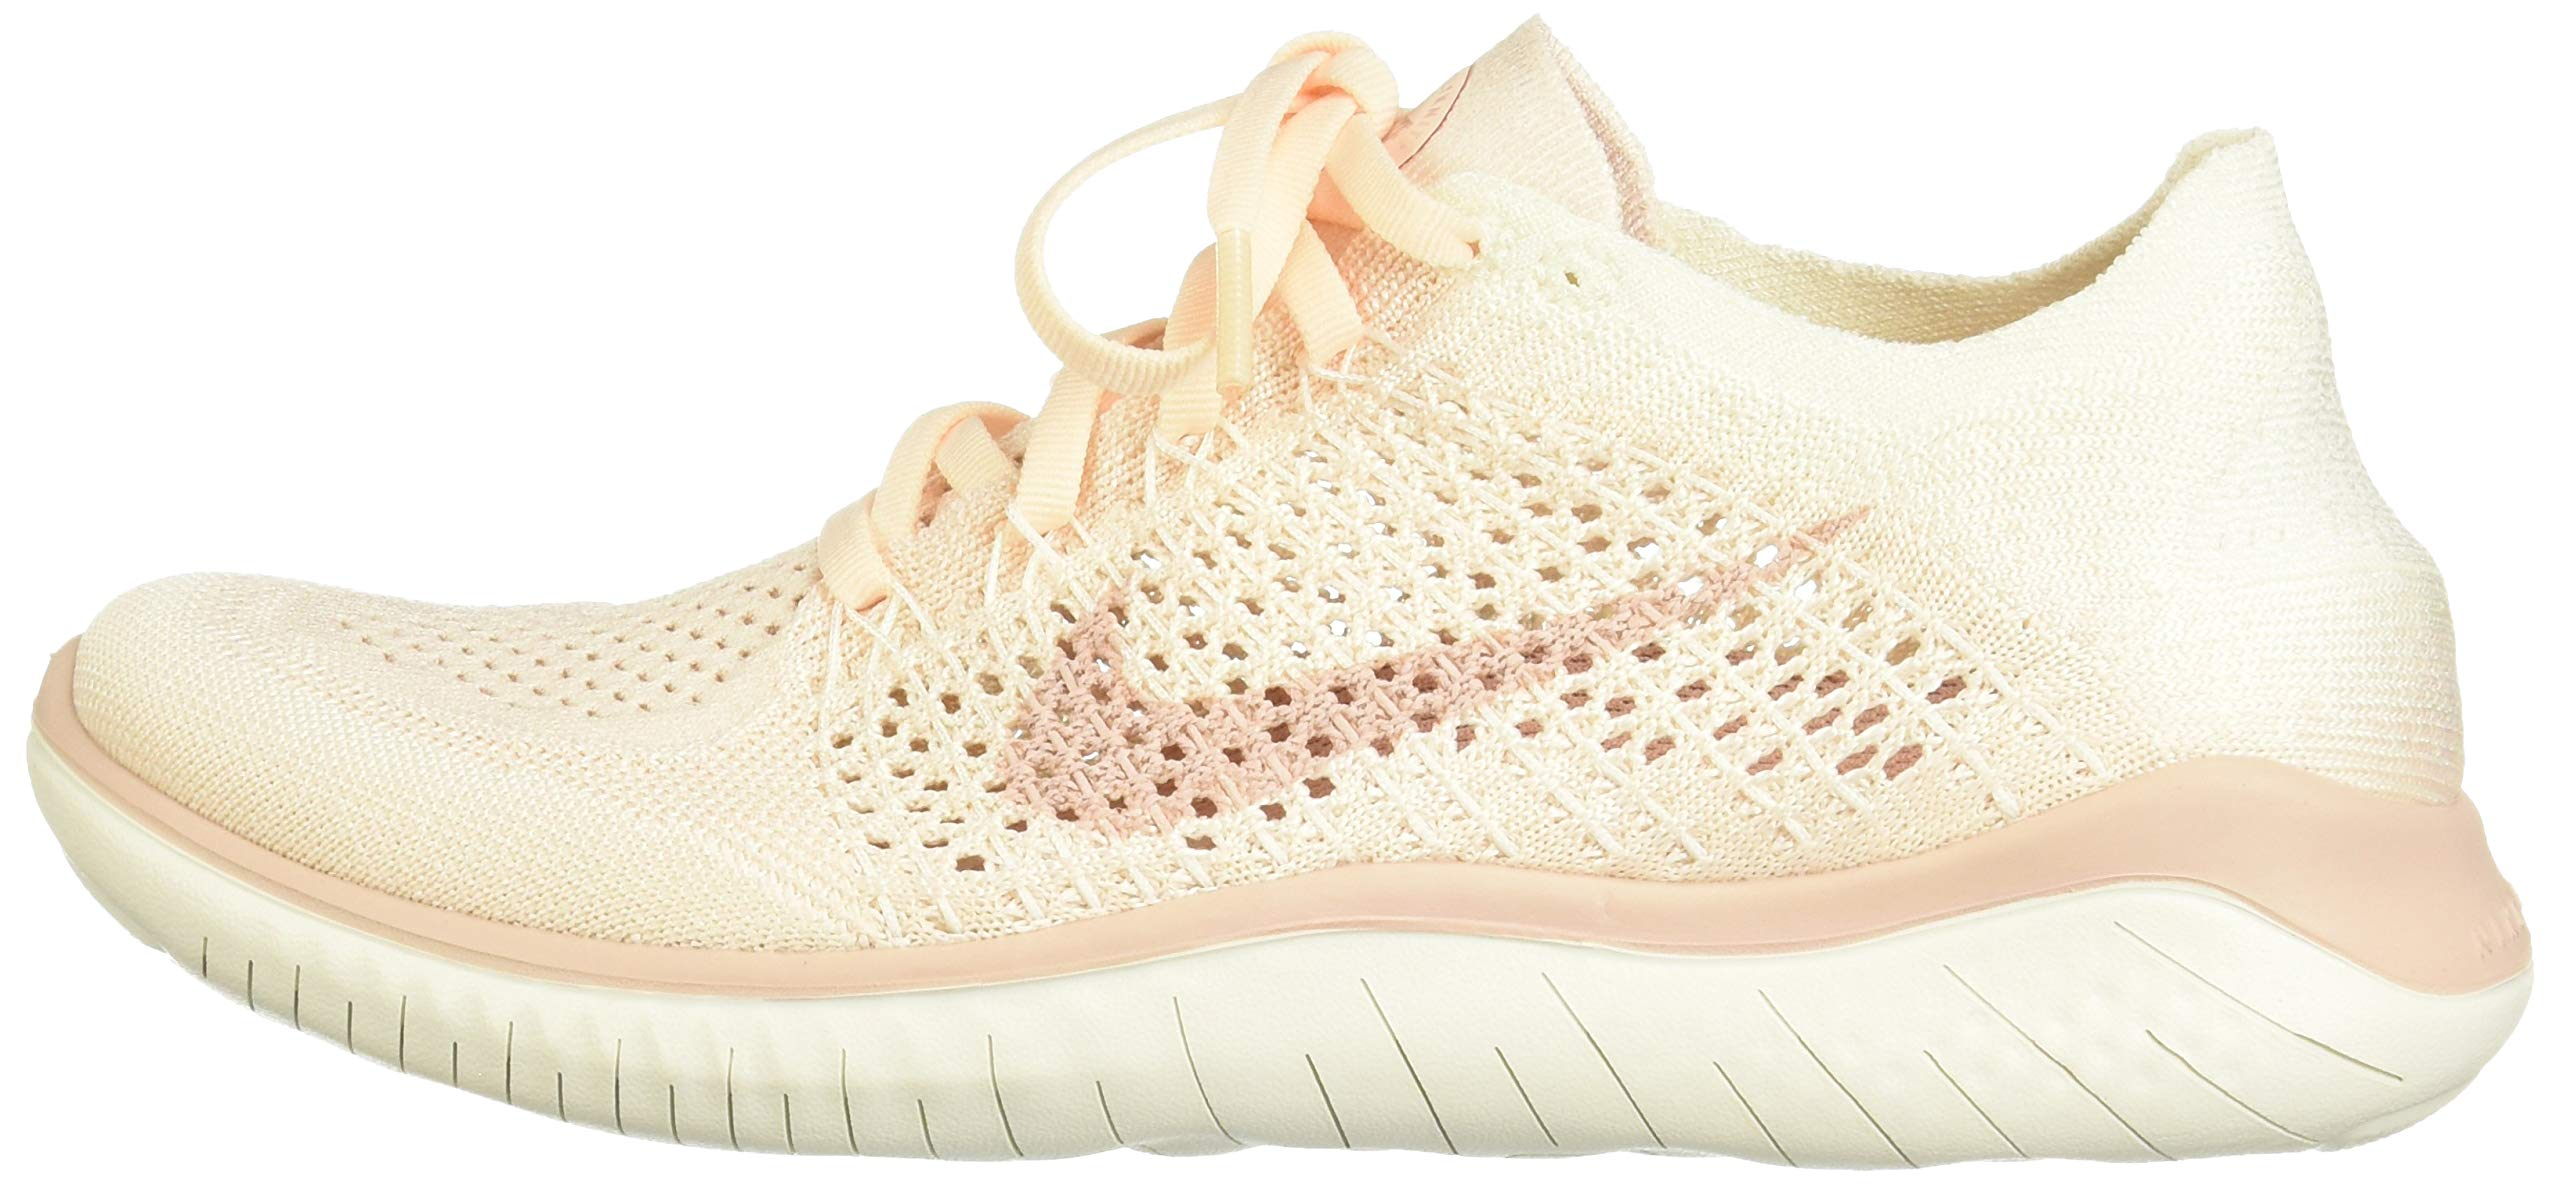 71KQRXmQBFL - Nike Women's Free Rn Flyknit 2018 Competition Running Shoes